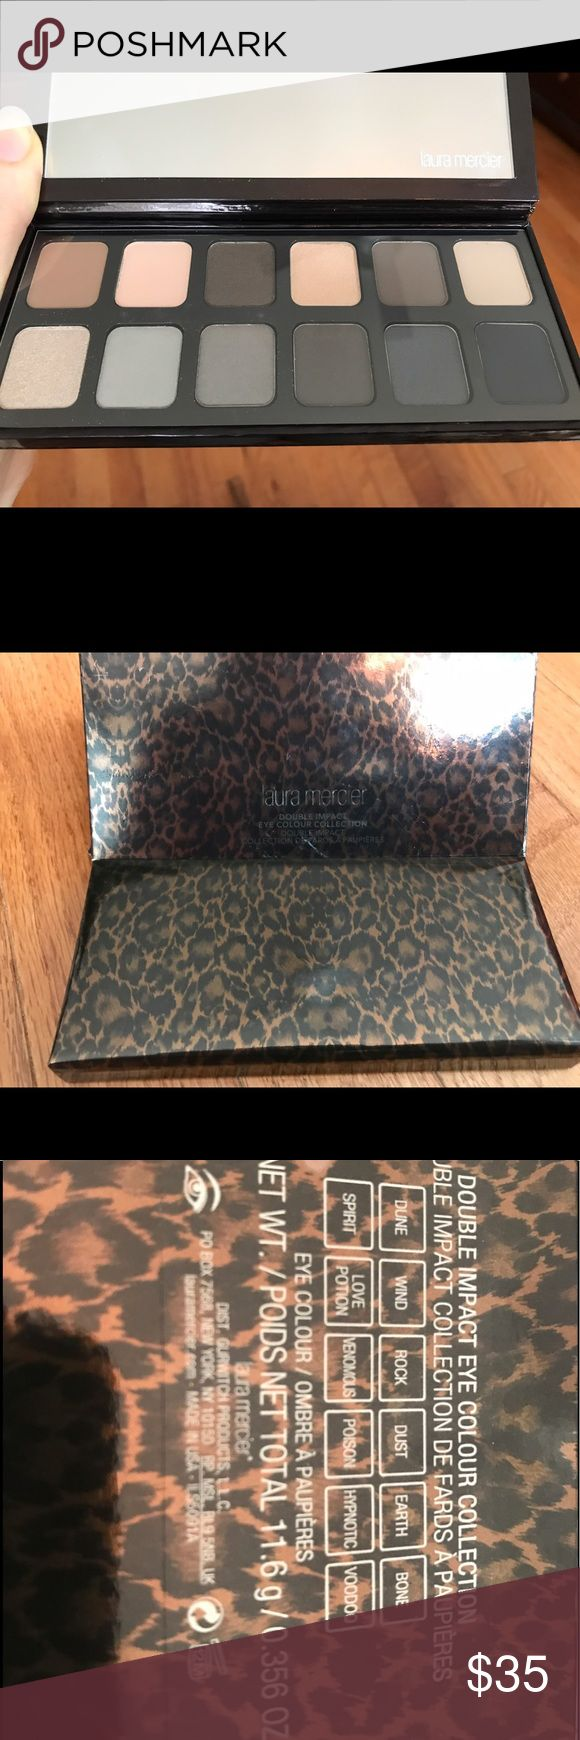 Laura Mercier Double Impact Eyeshadow palette Brand new in box- completely untouched - Laura Mercier eyeshadow palette. Mirrored palette with 12 total eye shadows. 9 sateen-shimmer shades from light to dark. Includes the following shades; Dune, wind, rock, dust, earth, bone, spirit, love potion, venomous, poison, hypnotic, voodoo. Protective film still on mirror. Laura Mercier Makeup Eyeshadow